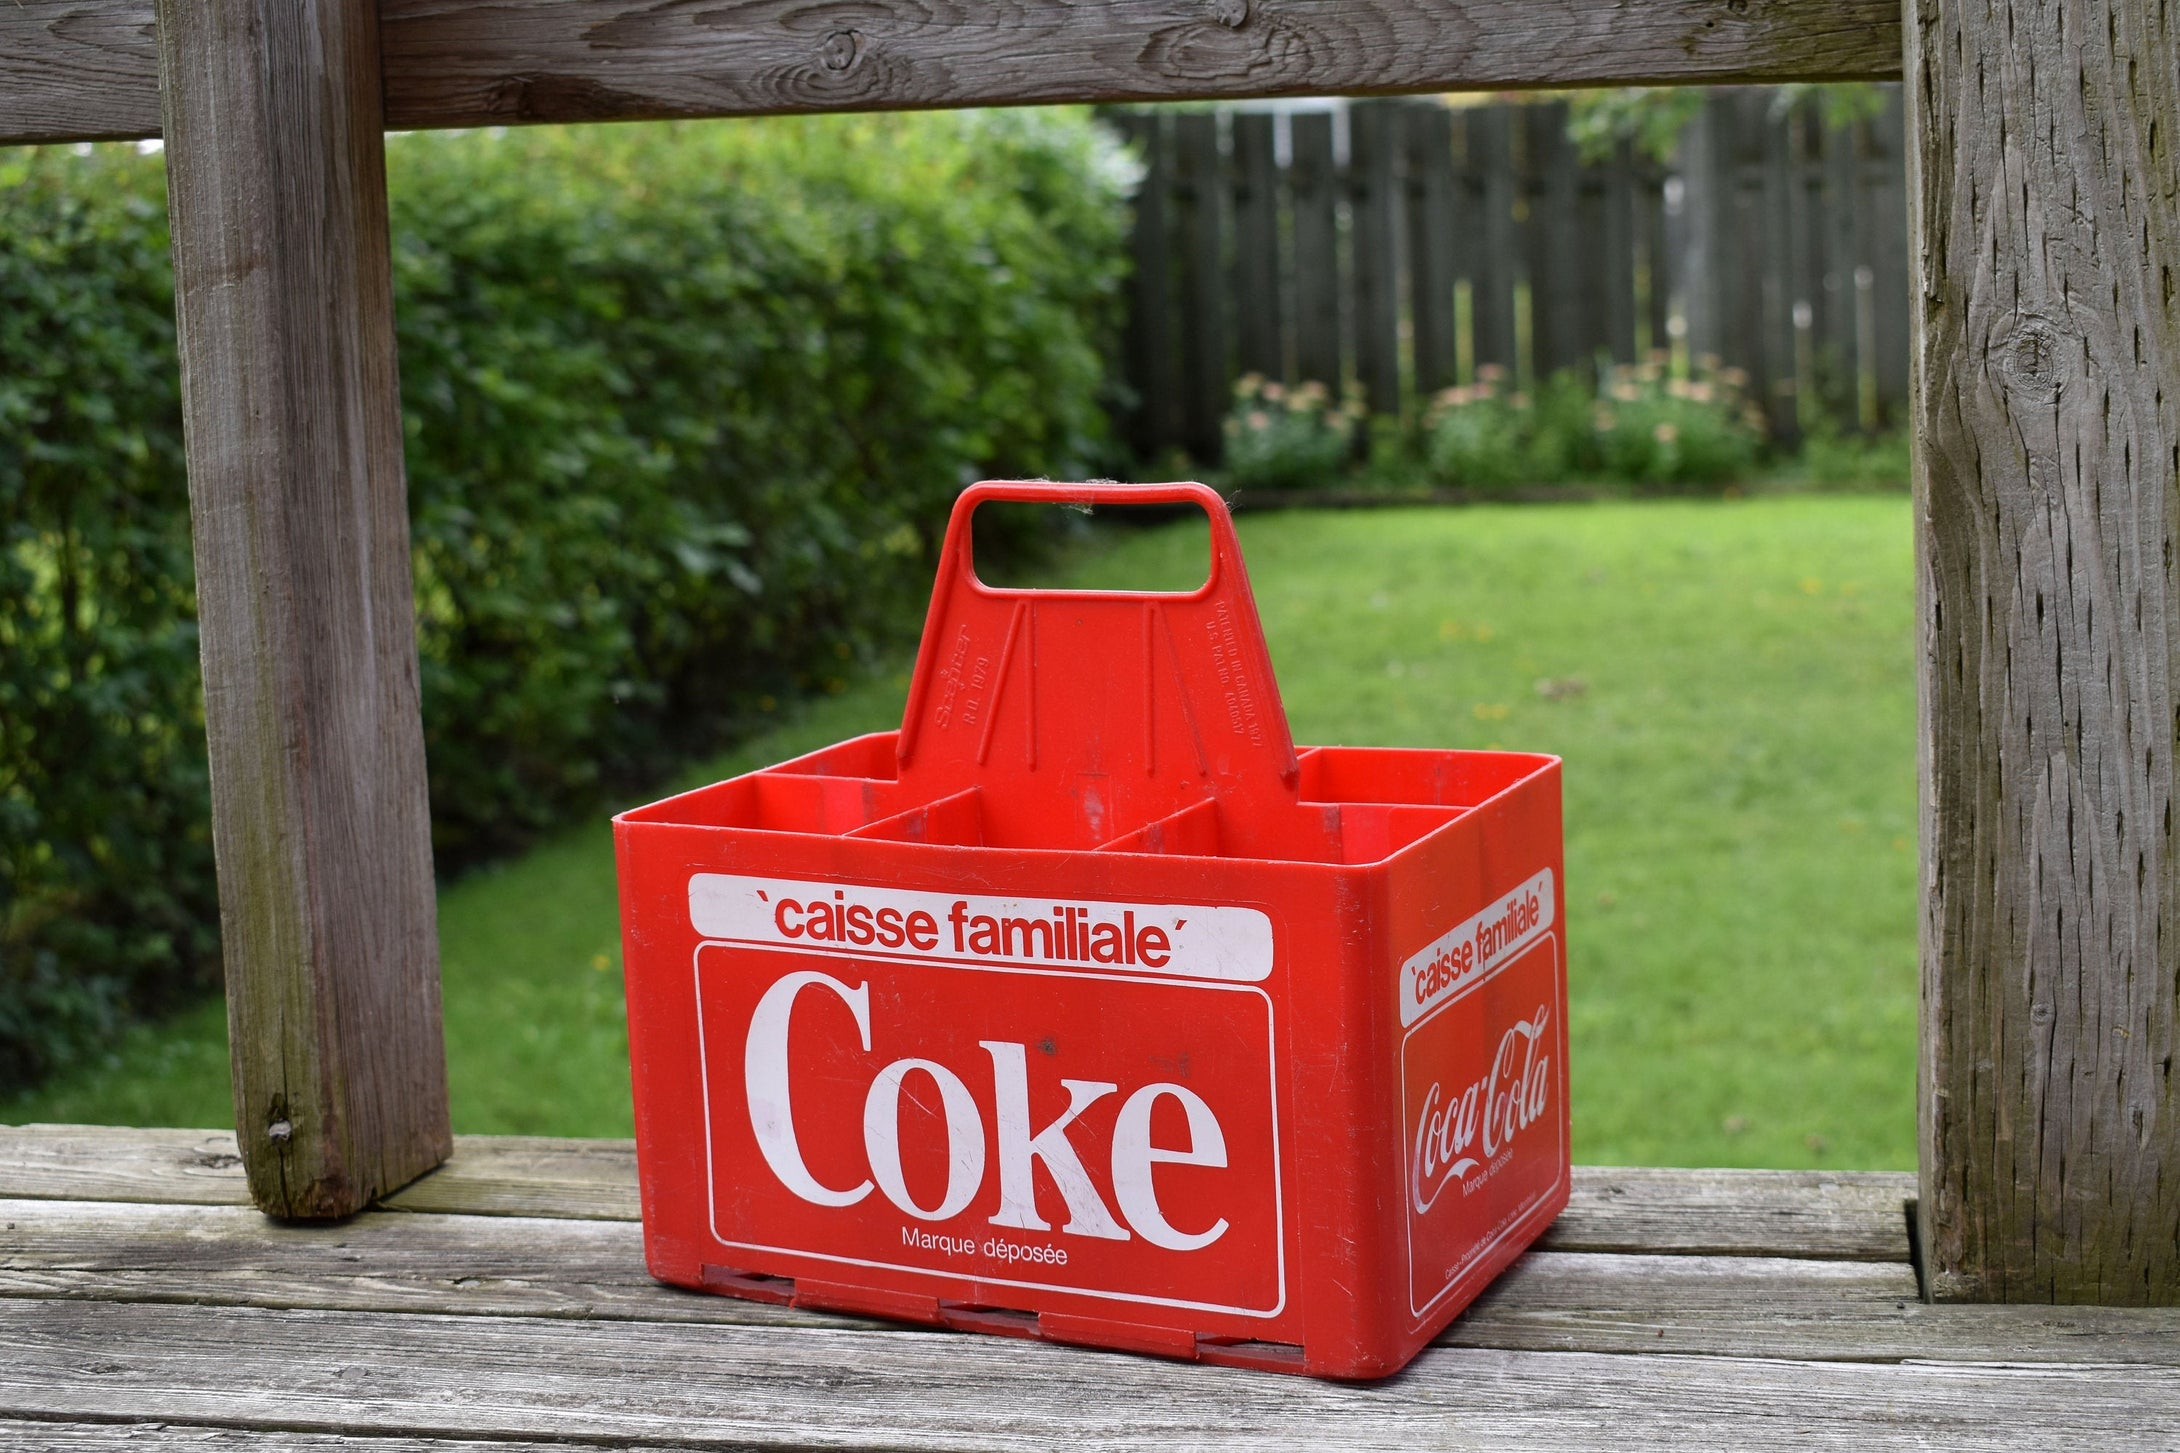 Coca-Cola Case - 1970s - Red Plastic - COKE CRATE - Advertising Collectible - Montreal, Quebec, Canada - Lot 4